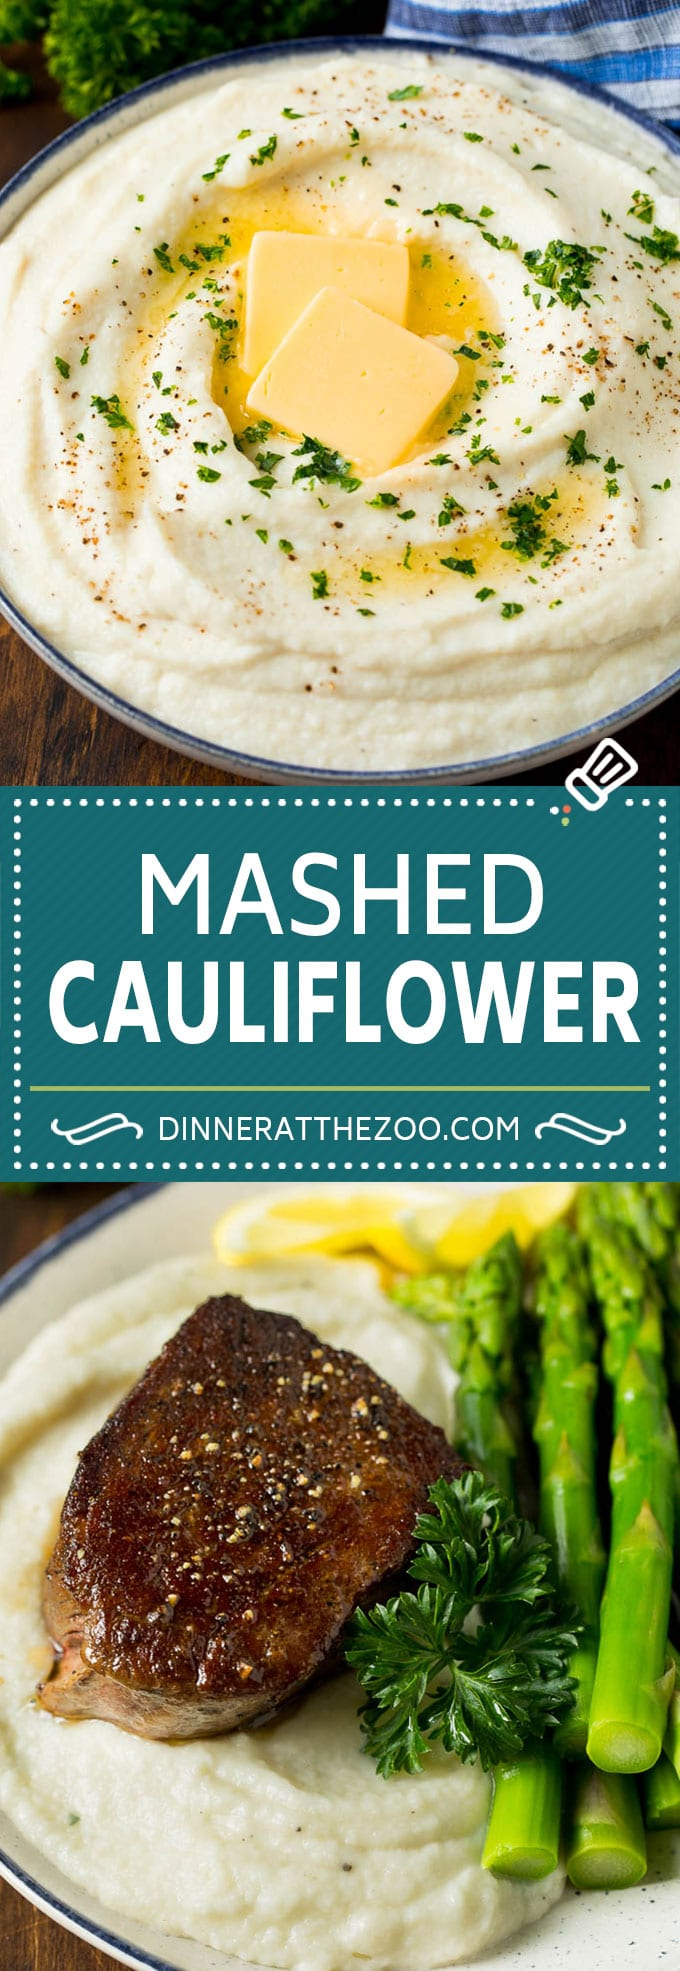 These cauliflower mashed potatoes are mixed with butter, cream and seasonings to make a super delicious side dish that's low in carbohydrates.